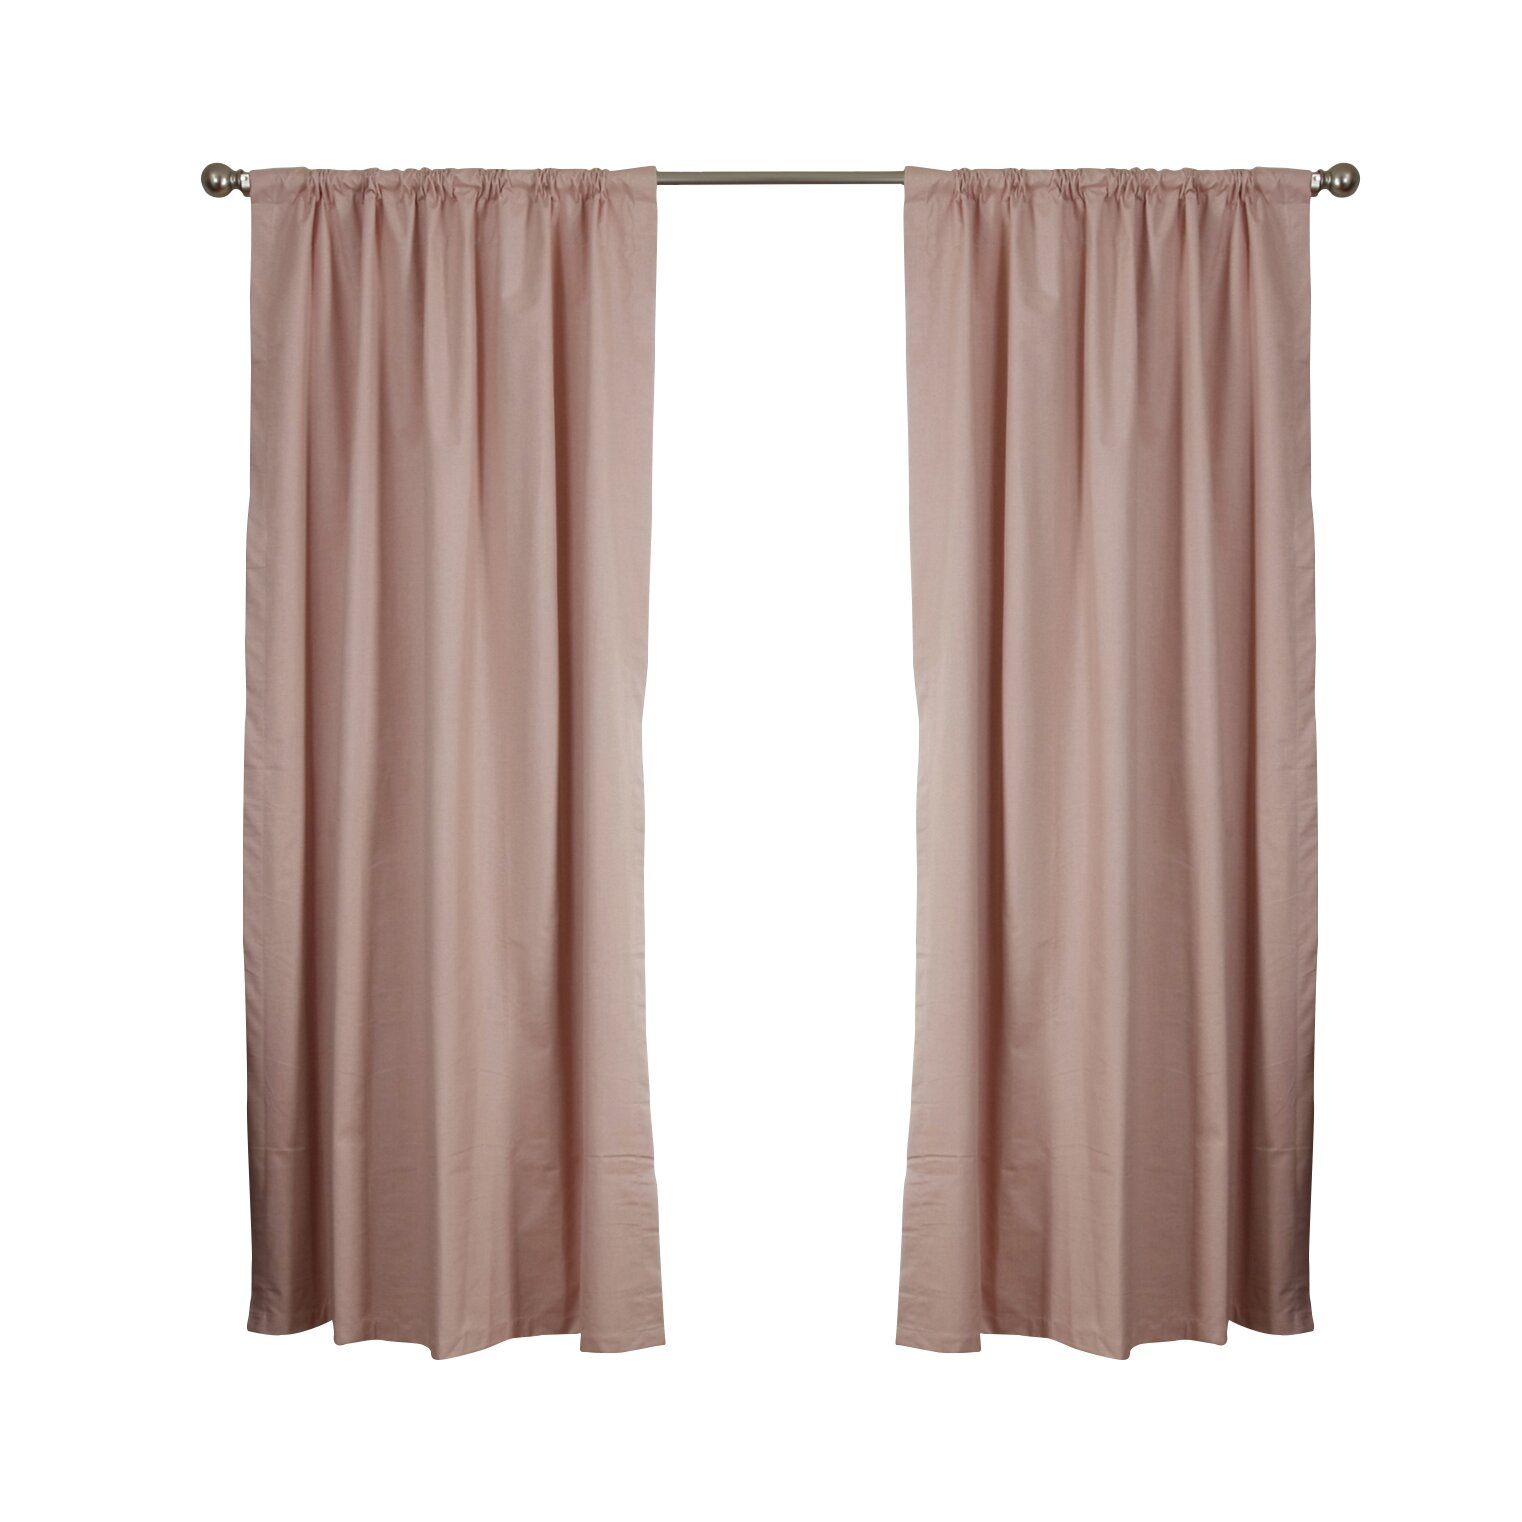 Roc Lon Woodstock Thermal Blackout Single Curtain Panel Reviews Wayfair